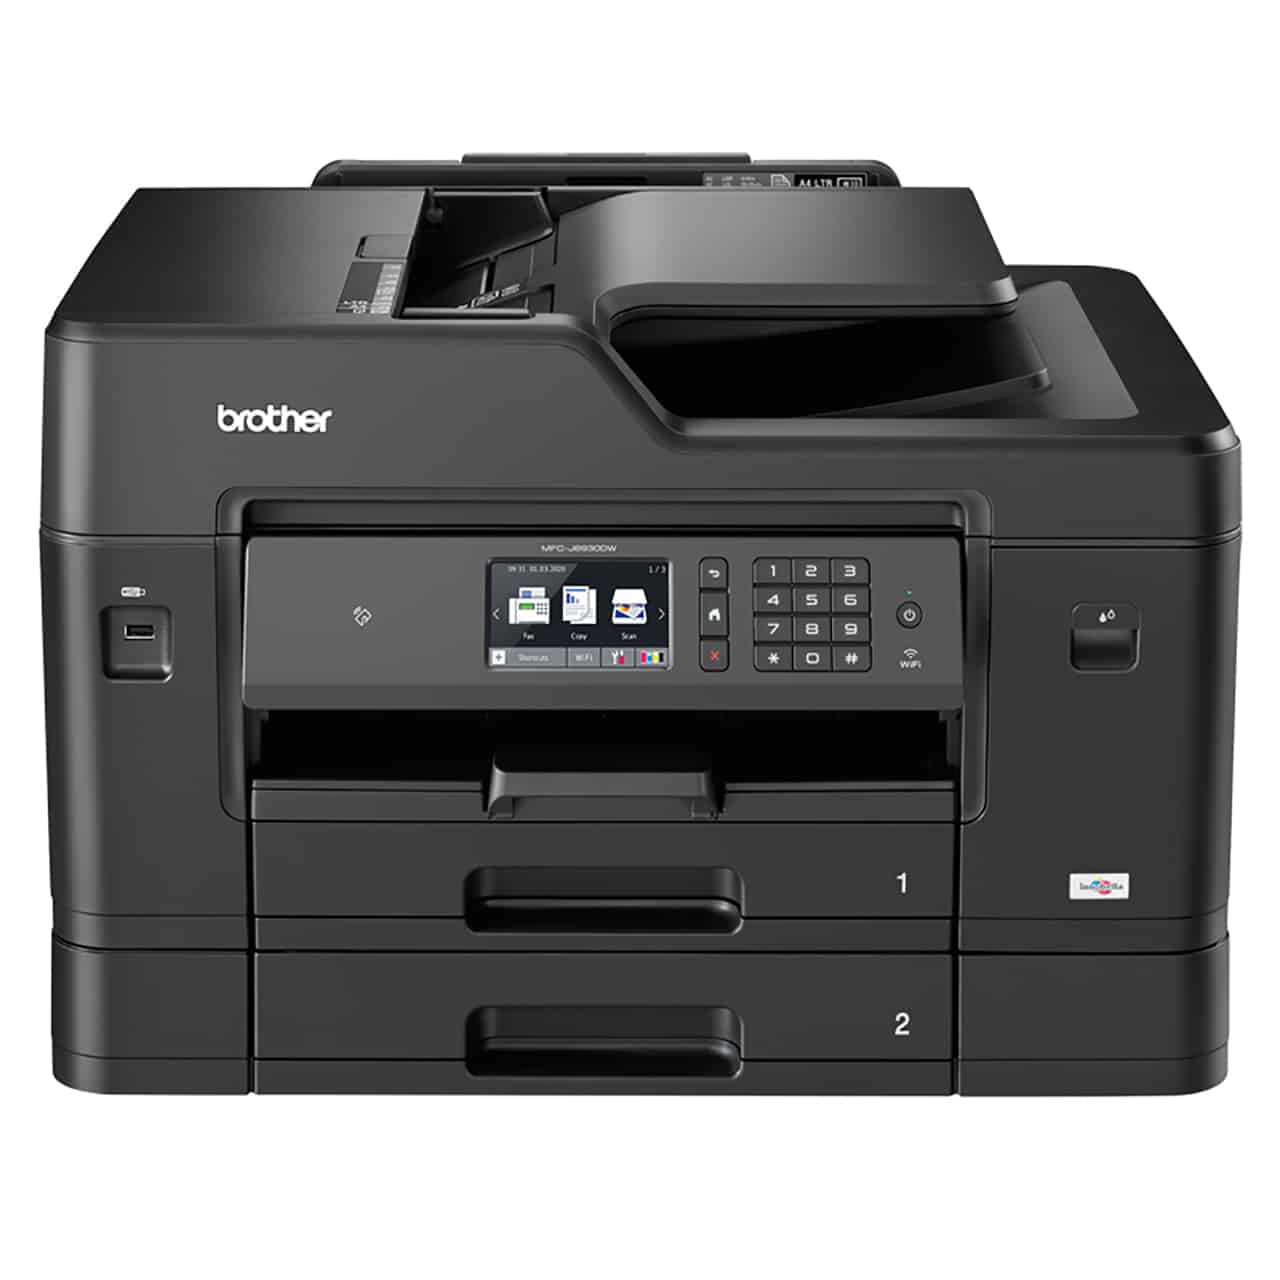 Brother MFC-J6930DW A3 Multi-Function Printer